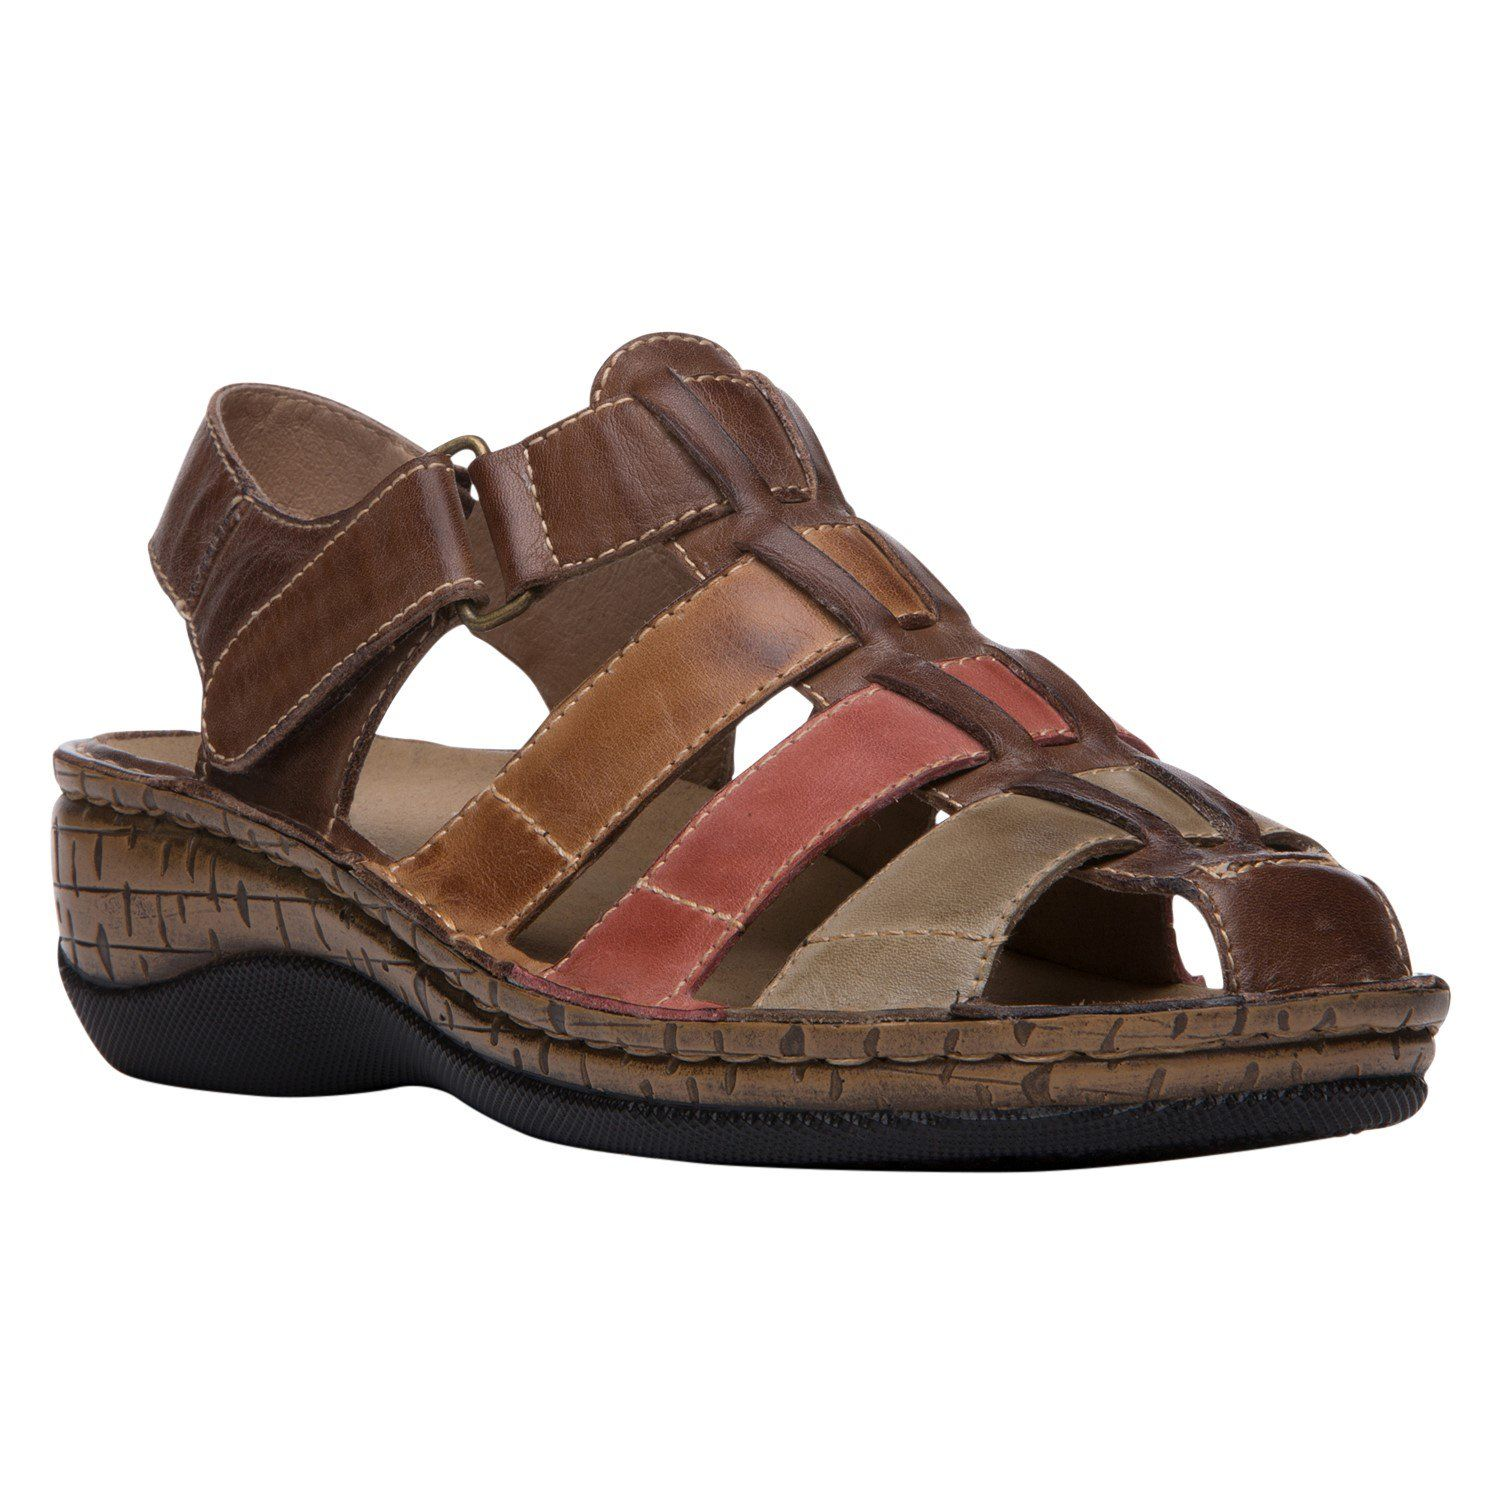 9db258b7901e Propet Jubilee Women s Sandal with Removable Insoles. The Propet Sandal  Jubilee is a Womens shoe that is part of Propet s Orthotic collection.